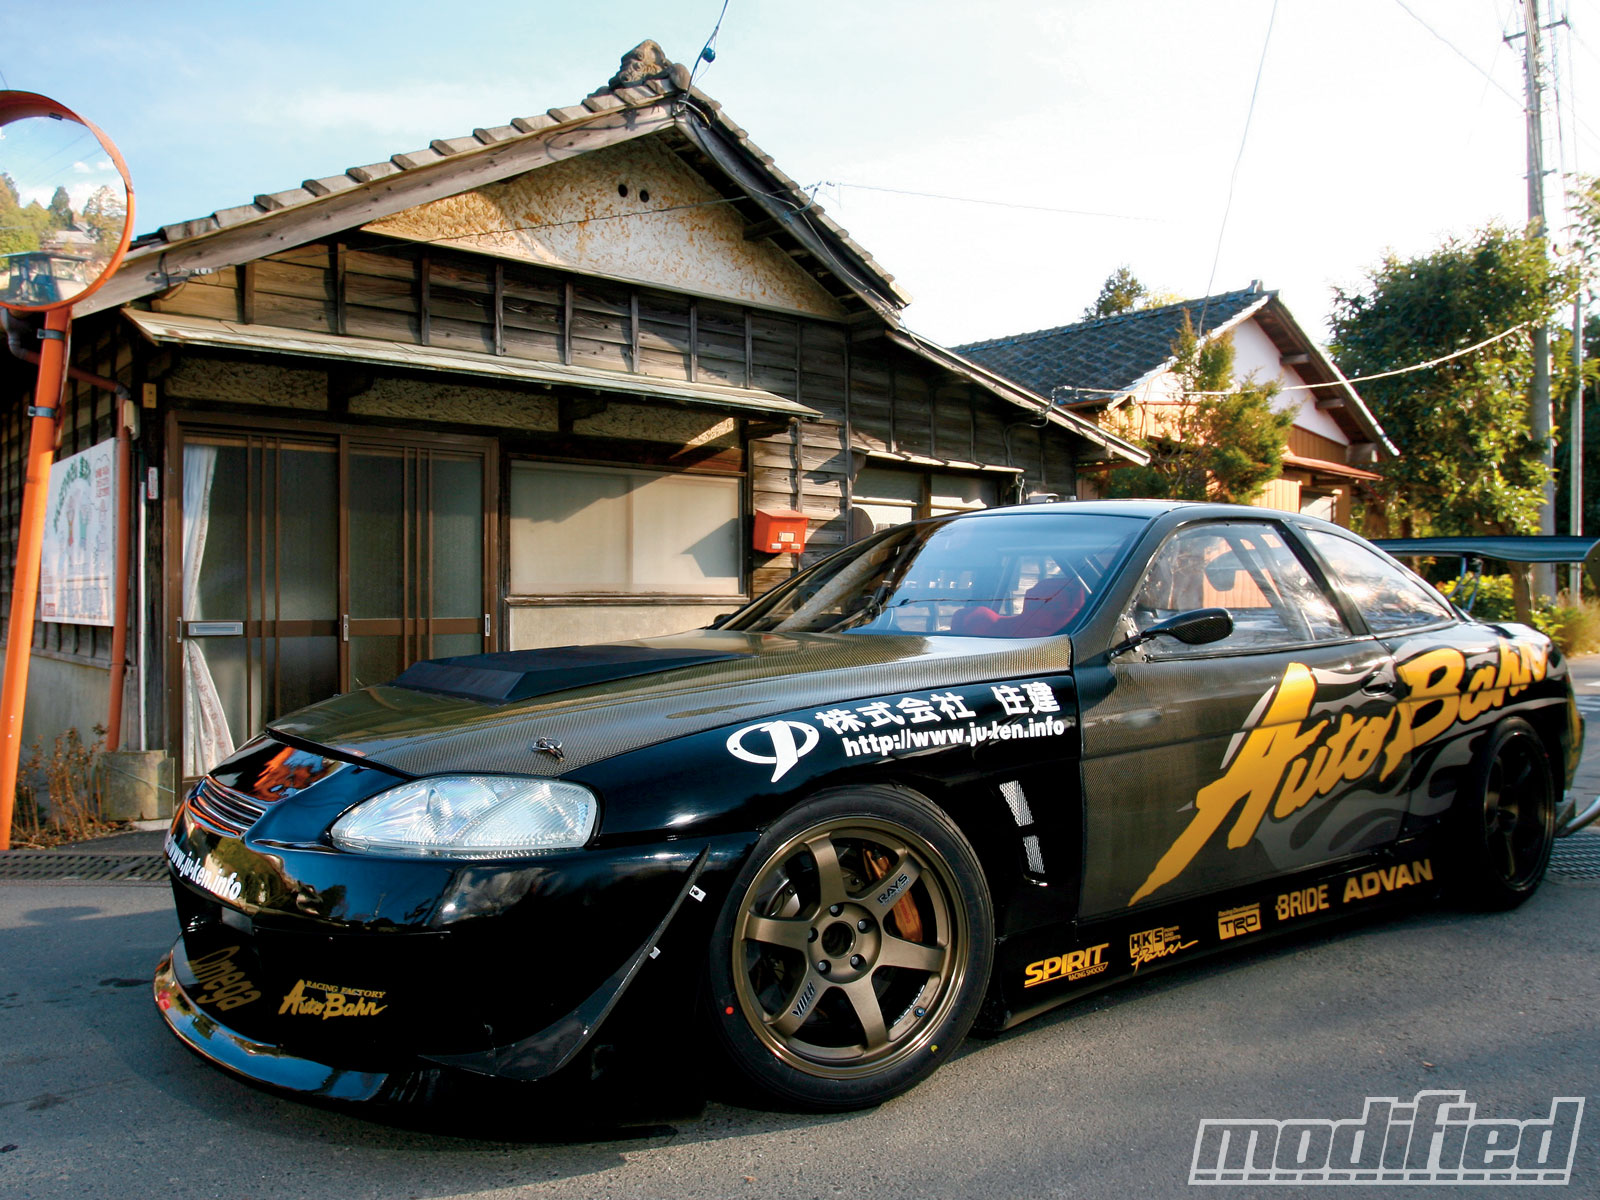 1992 Toyota Soarer - Making It Stick - Modified Magazine